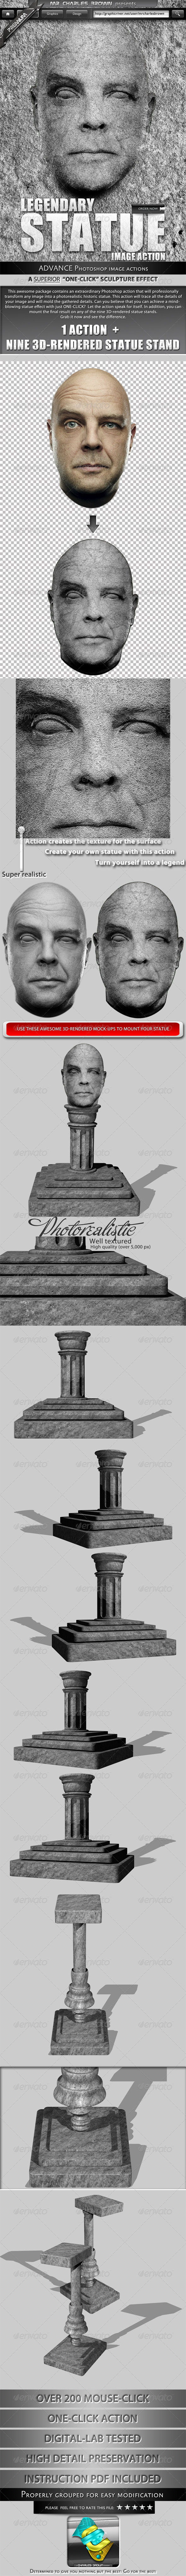 GraphicRiver Legendary Statue Image Action 2650322